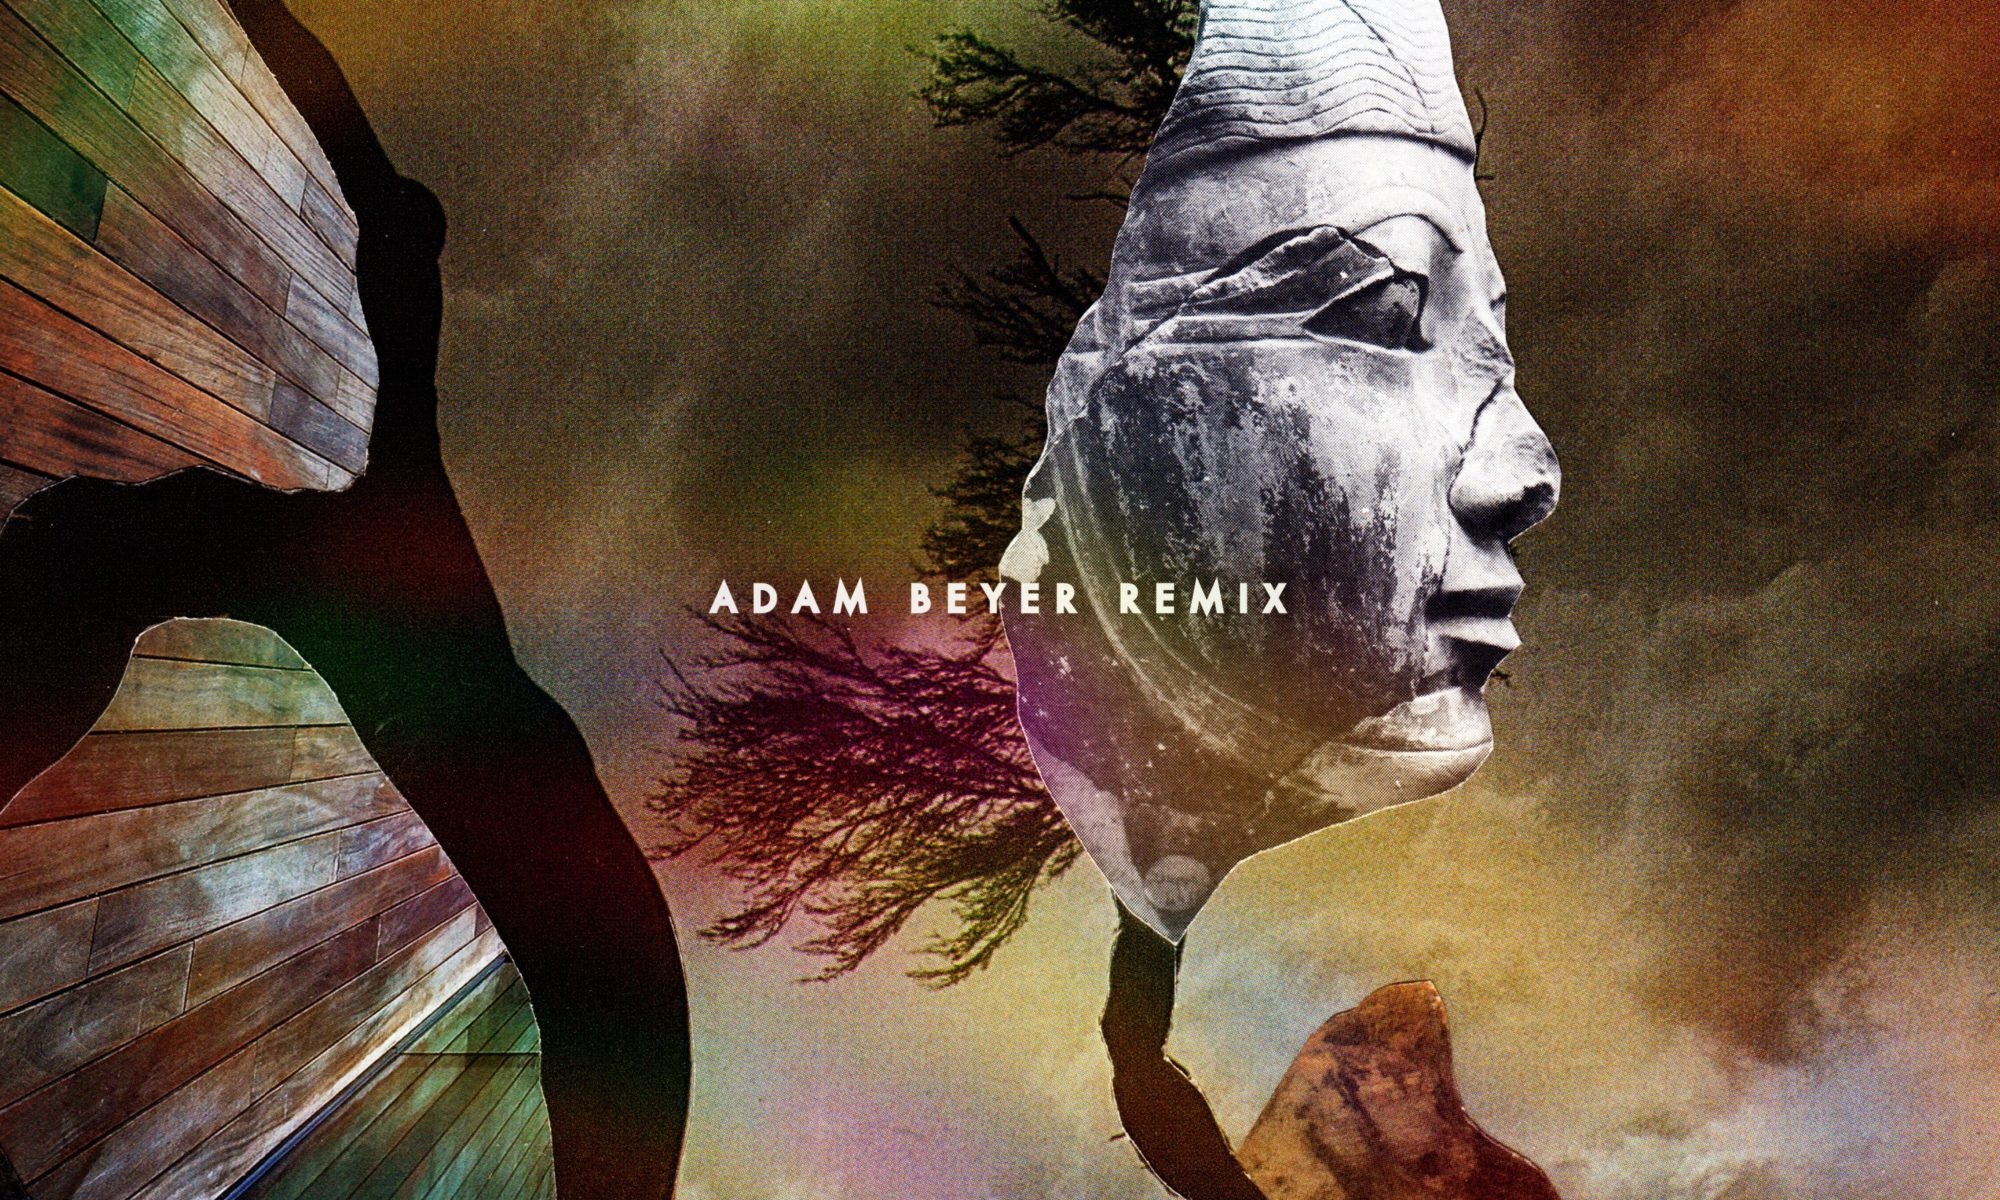 Adam Beyer remixes Monolink's 'Black Day' - out today